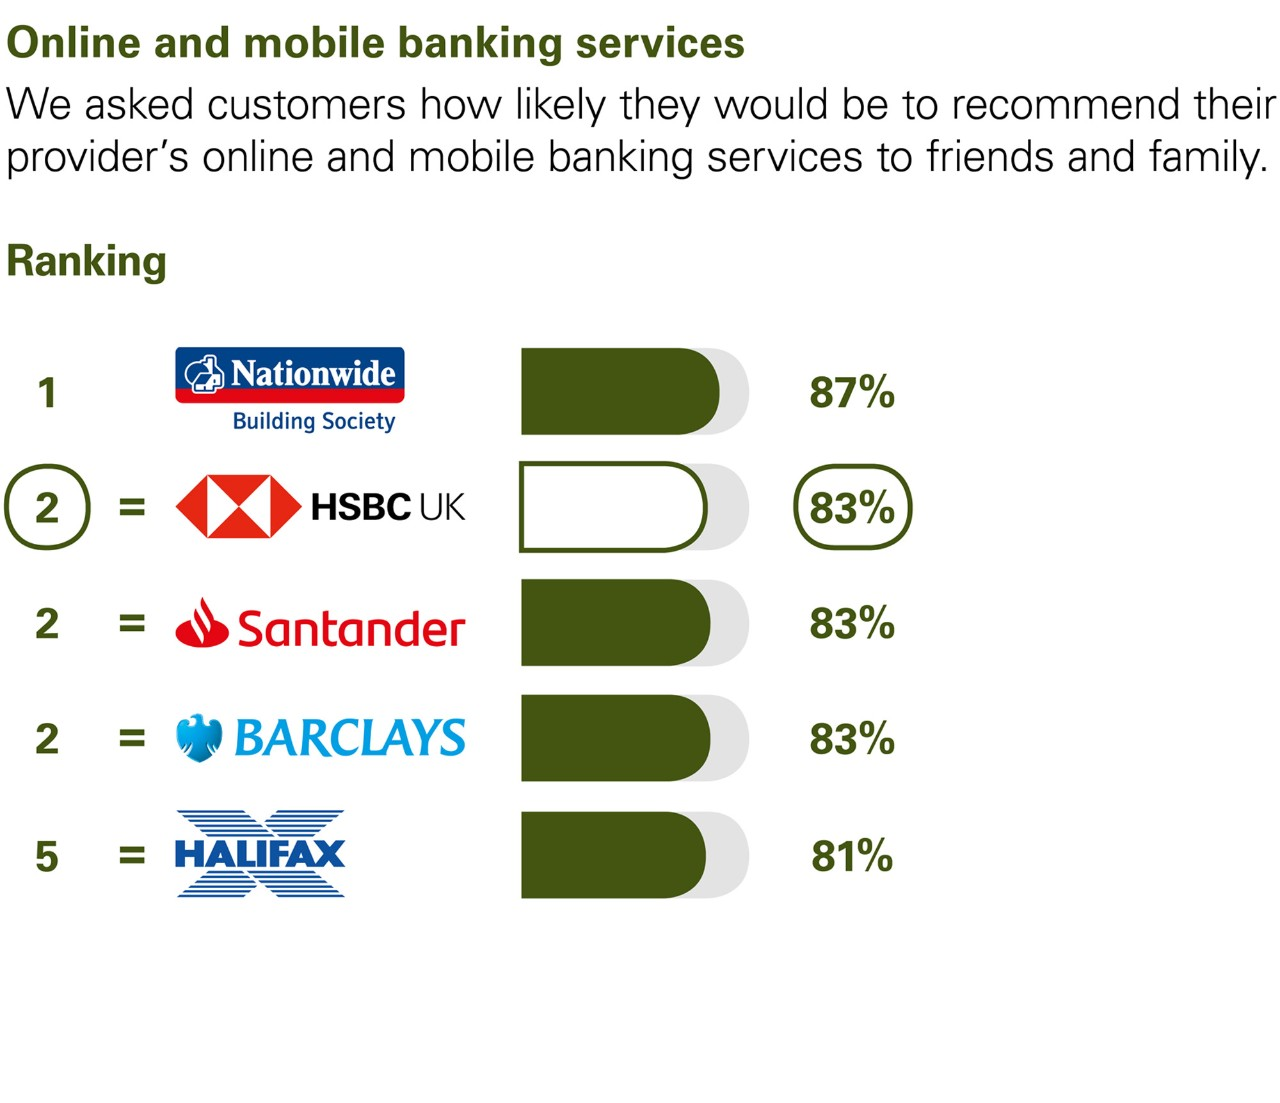 Online and mobile banking services. We asked customers how likely they would be to recommend their provider's online and mobile banking services to friends and family. Results: Equal 1 Halifax 83%. Equal 1 Nationwide 83%. 3 Santander 81%. Equal 4 Danske Bank 80%. Equal 4 Barclays 80%. 6 HSBC UK 76%.